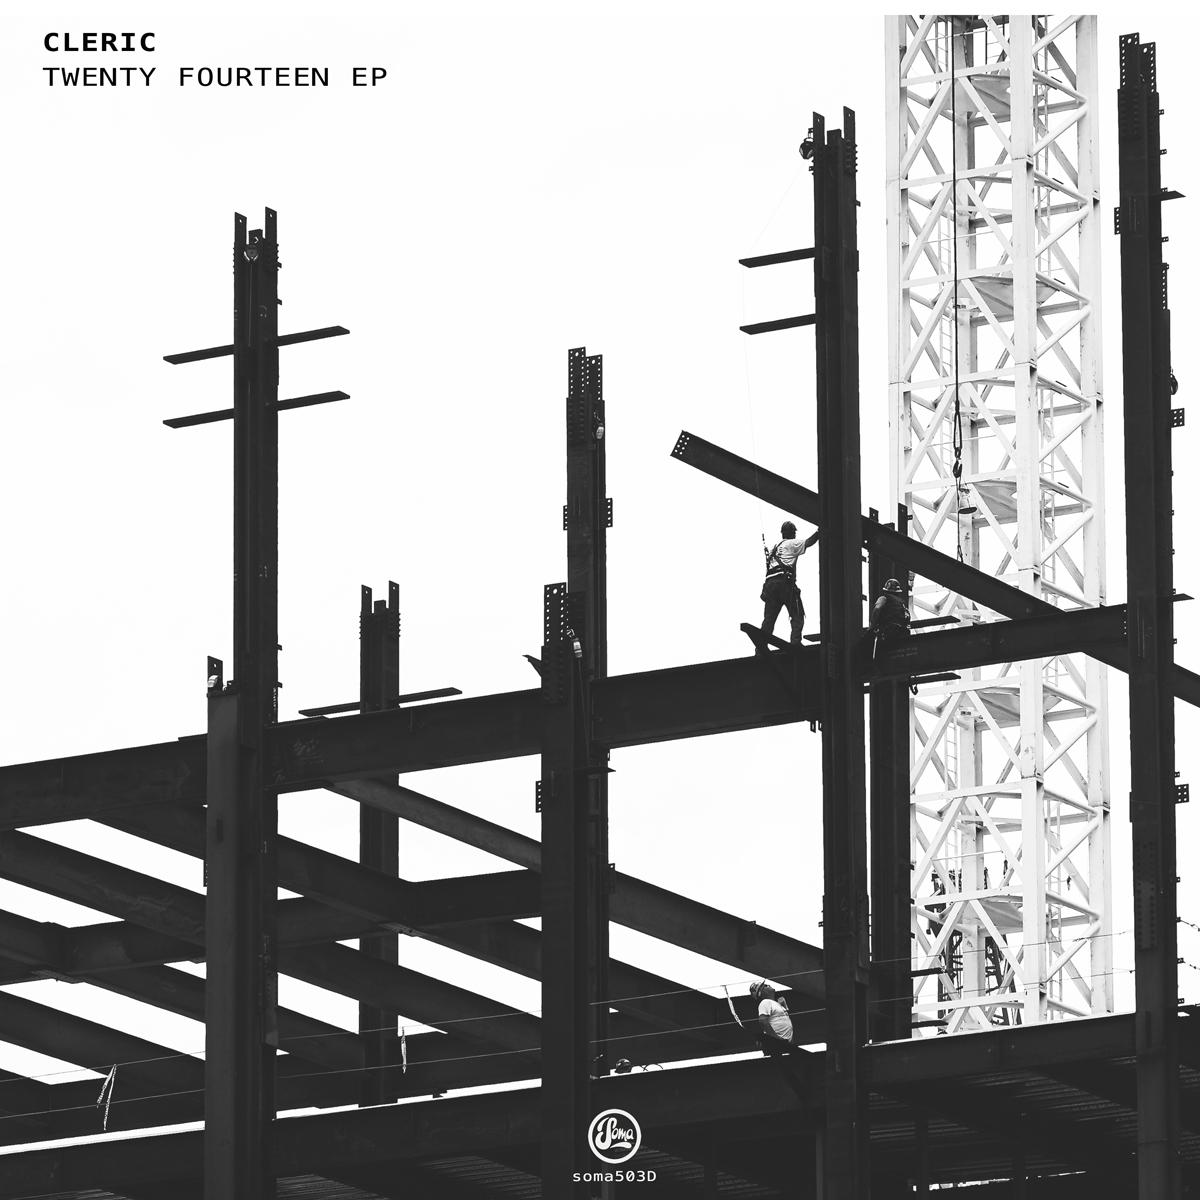 Cleric - Twenty Fourteen EP